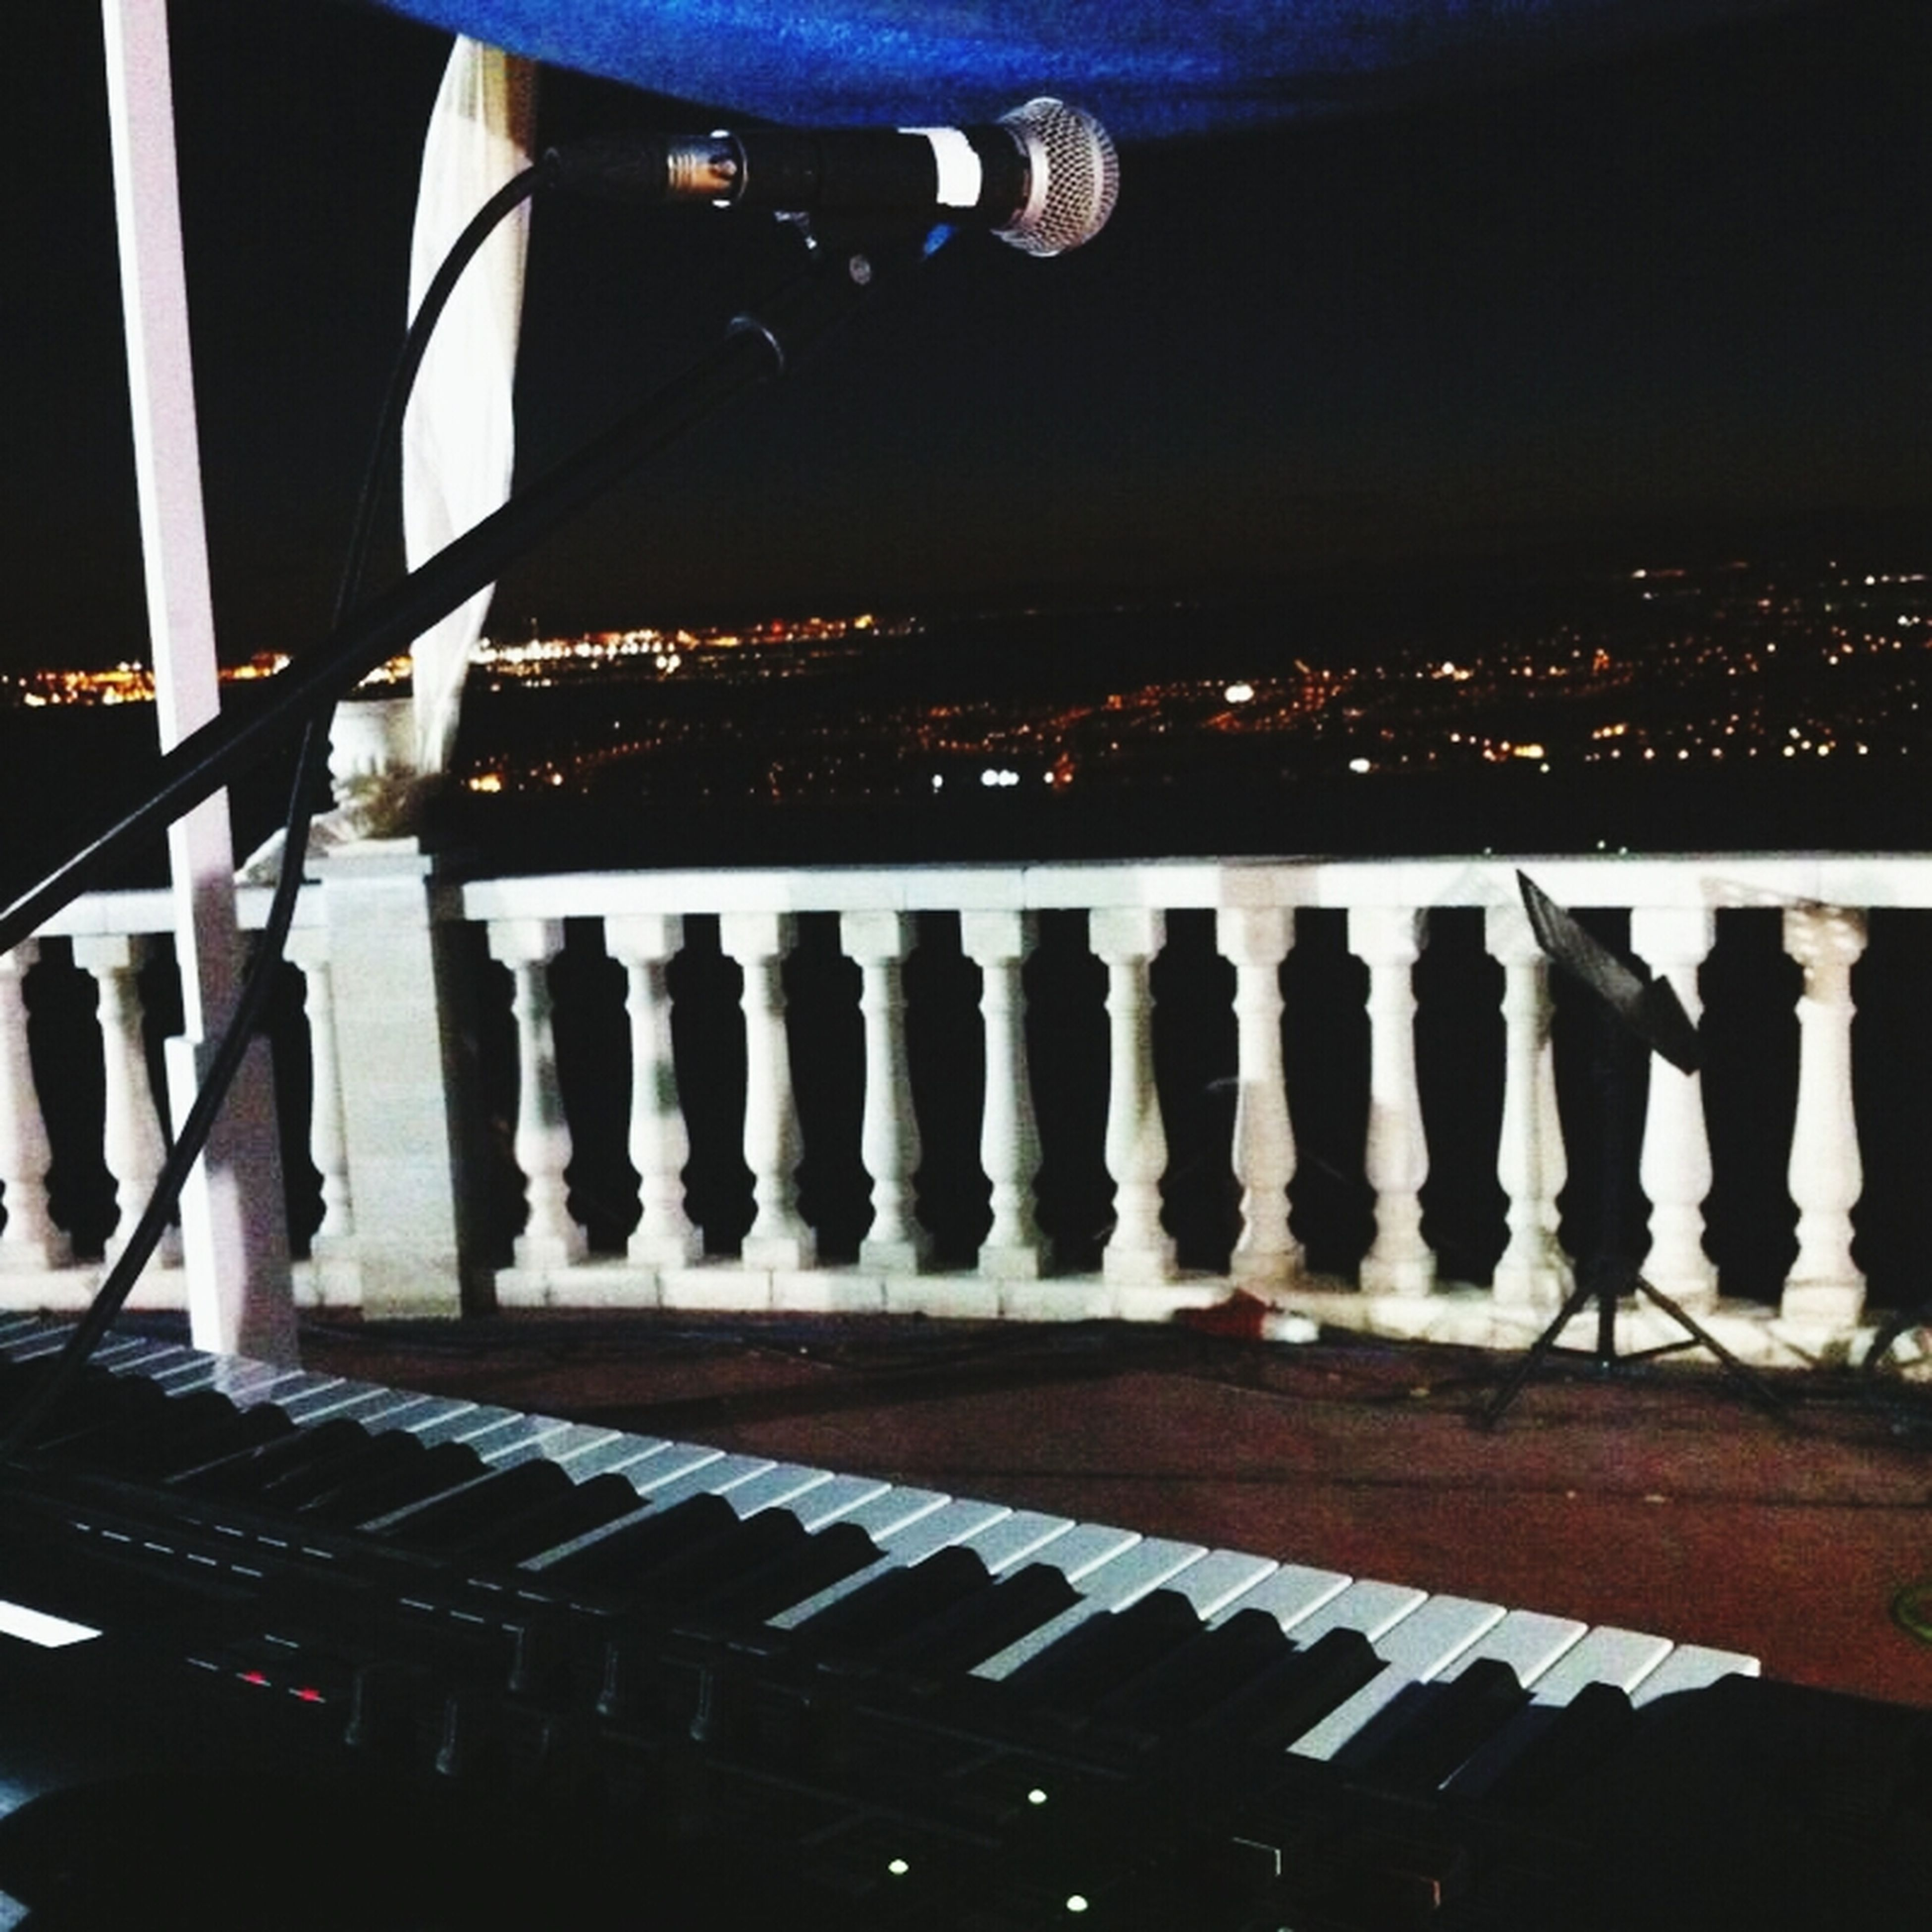 illuminated, night, in a row, lighting equipment, indoors, arts culture and entertainment, metal, built structure, high angle view, hanging, railing, musical instrument, music, connection, transportation, low angle view, architecture, no people, bridge - man made structure